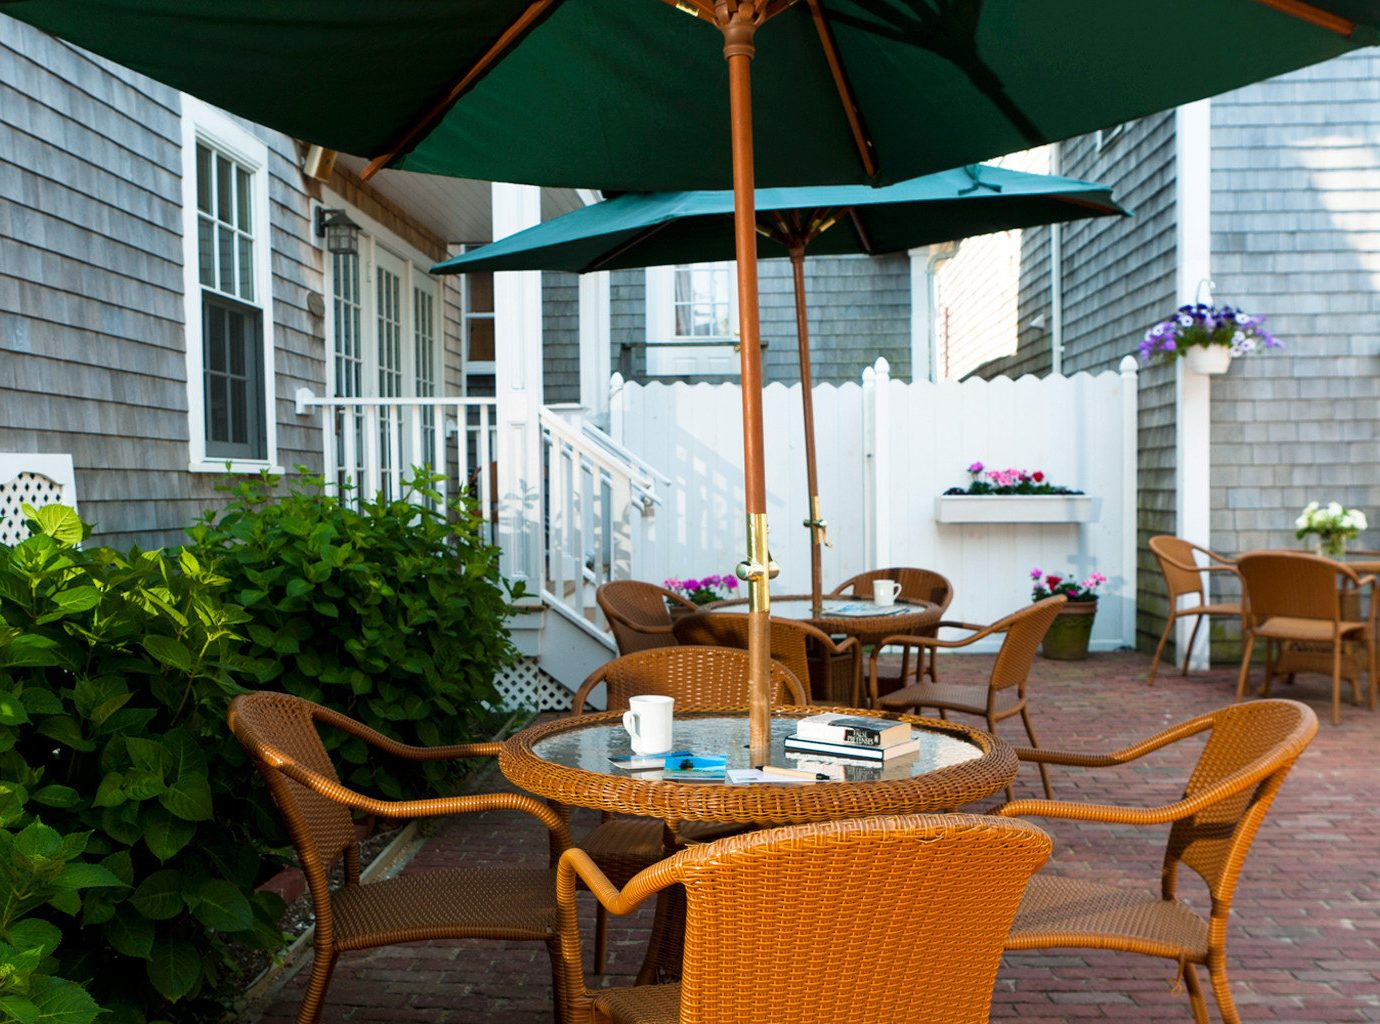 B&B Boutique Dining Grounds Patio Waterfront chair property house porch backyard cottage outdoor structure home Resort Villa